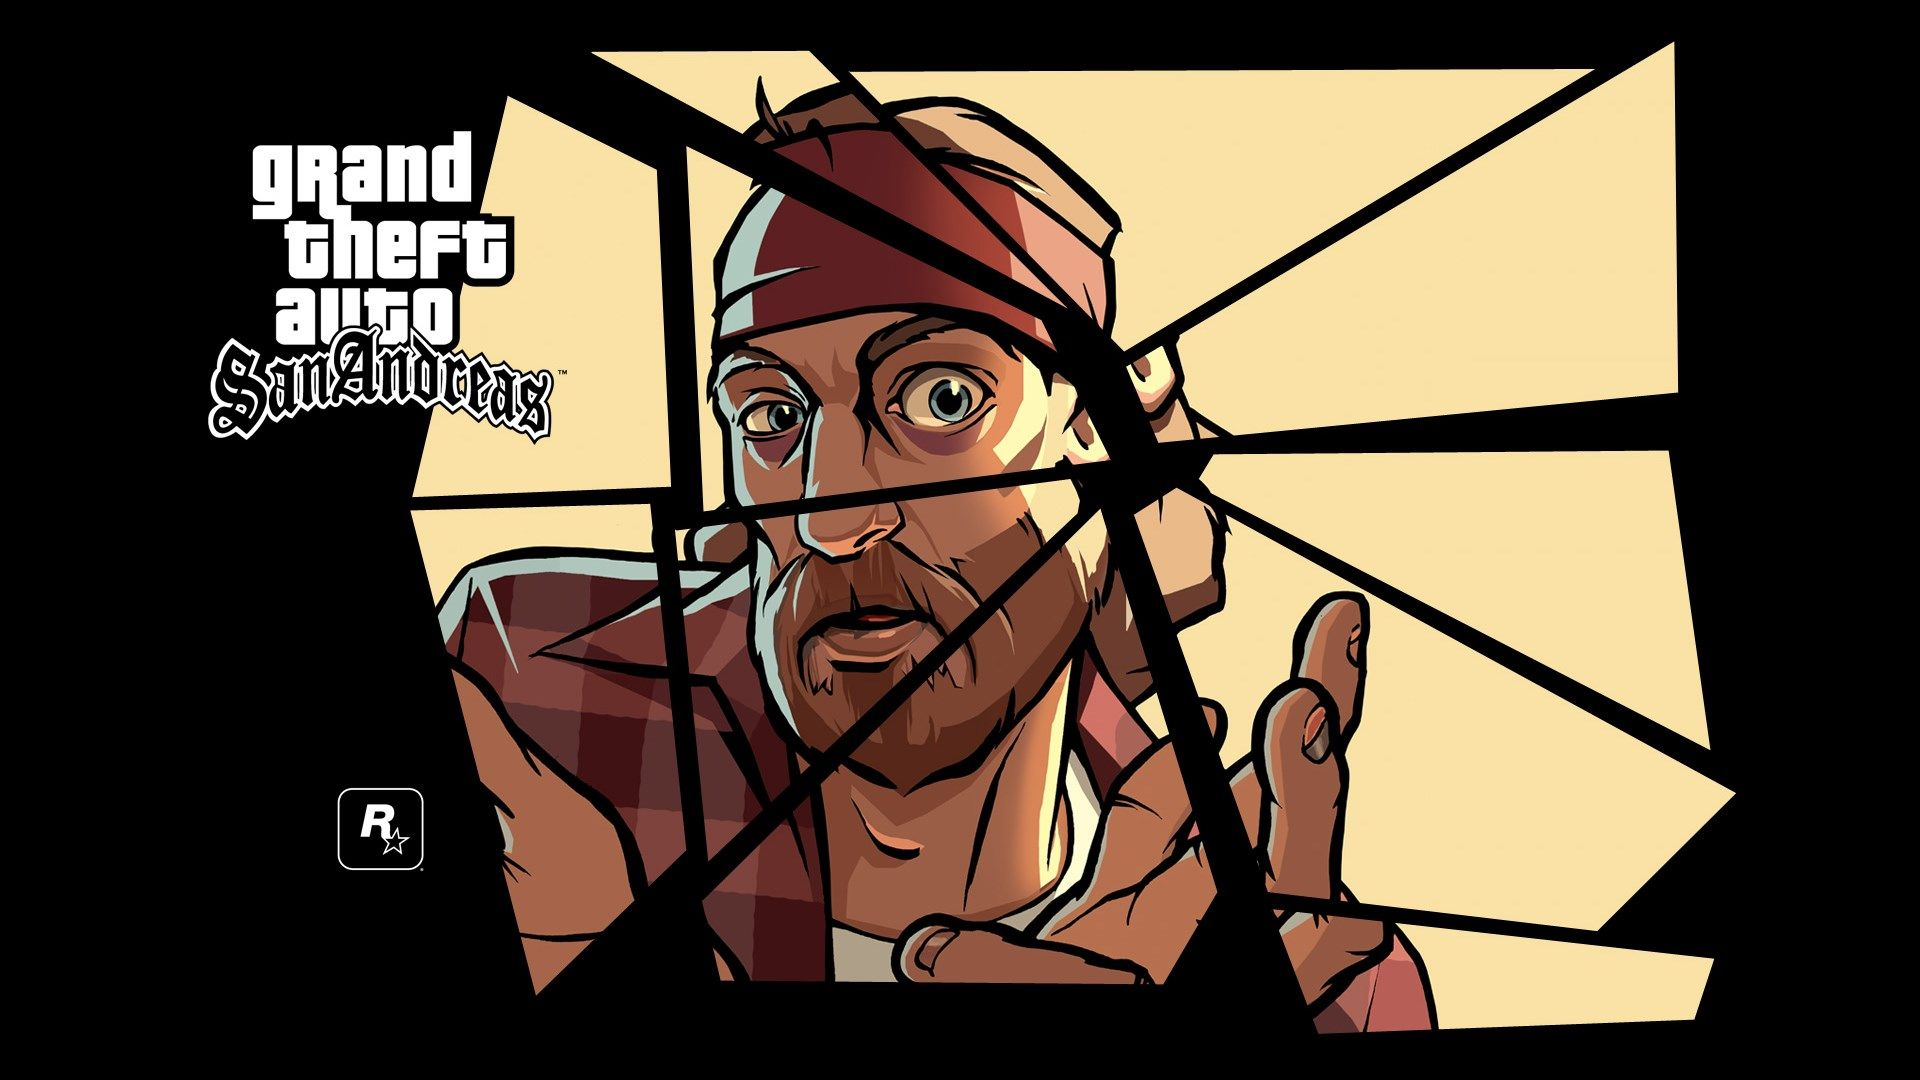 1920x1080 Grand Theft Auto San Andreas Game Wallpaper San